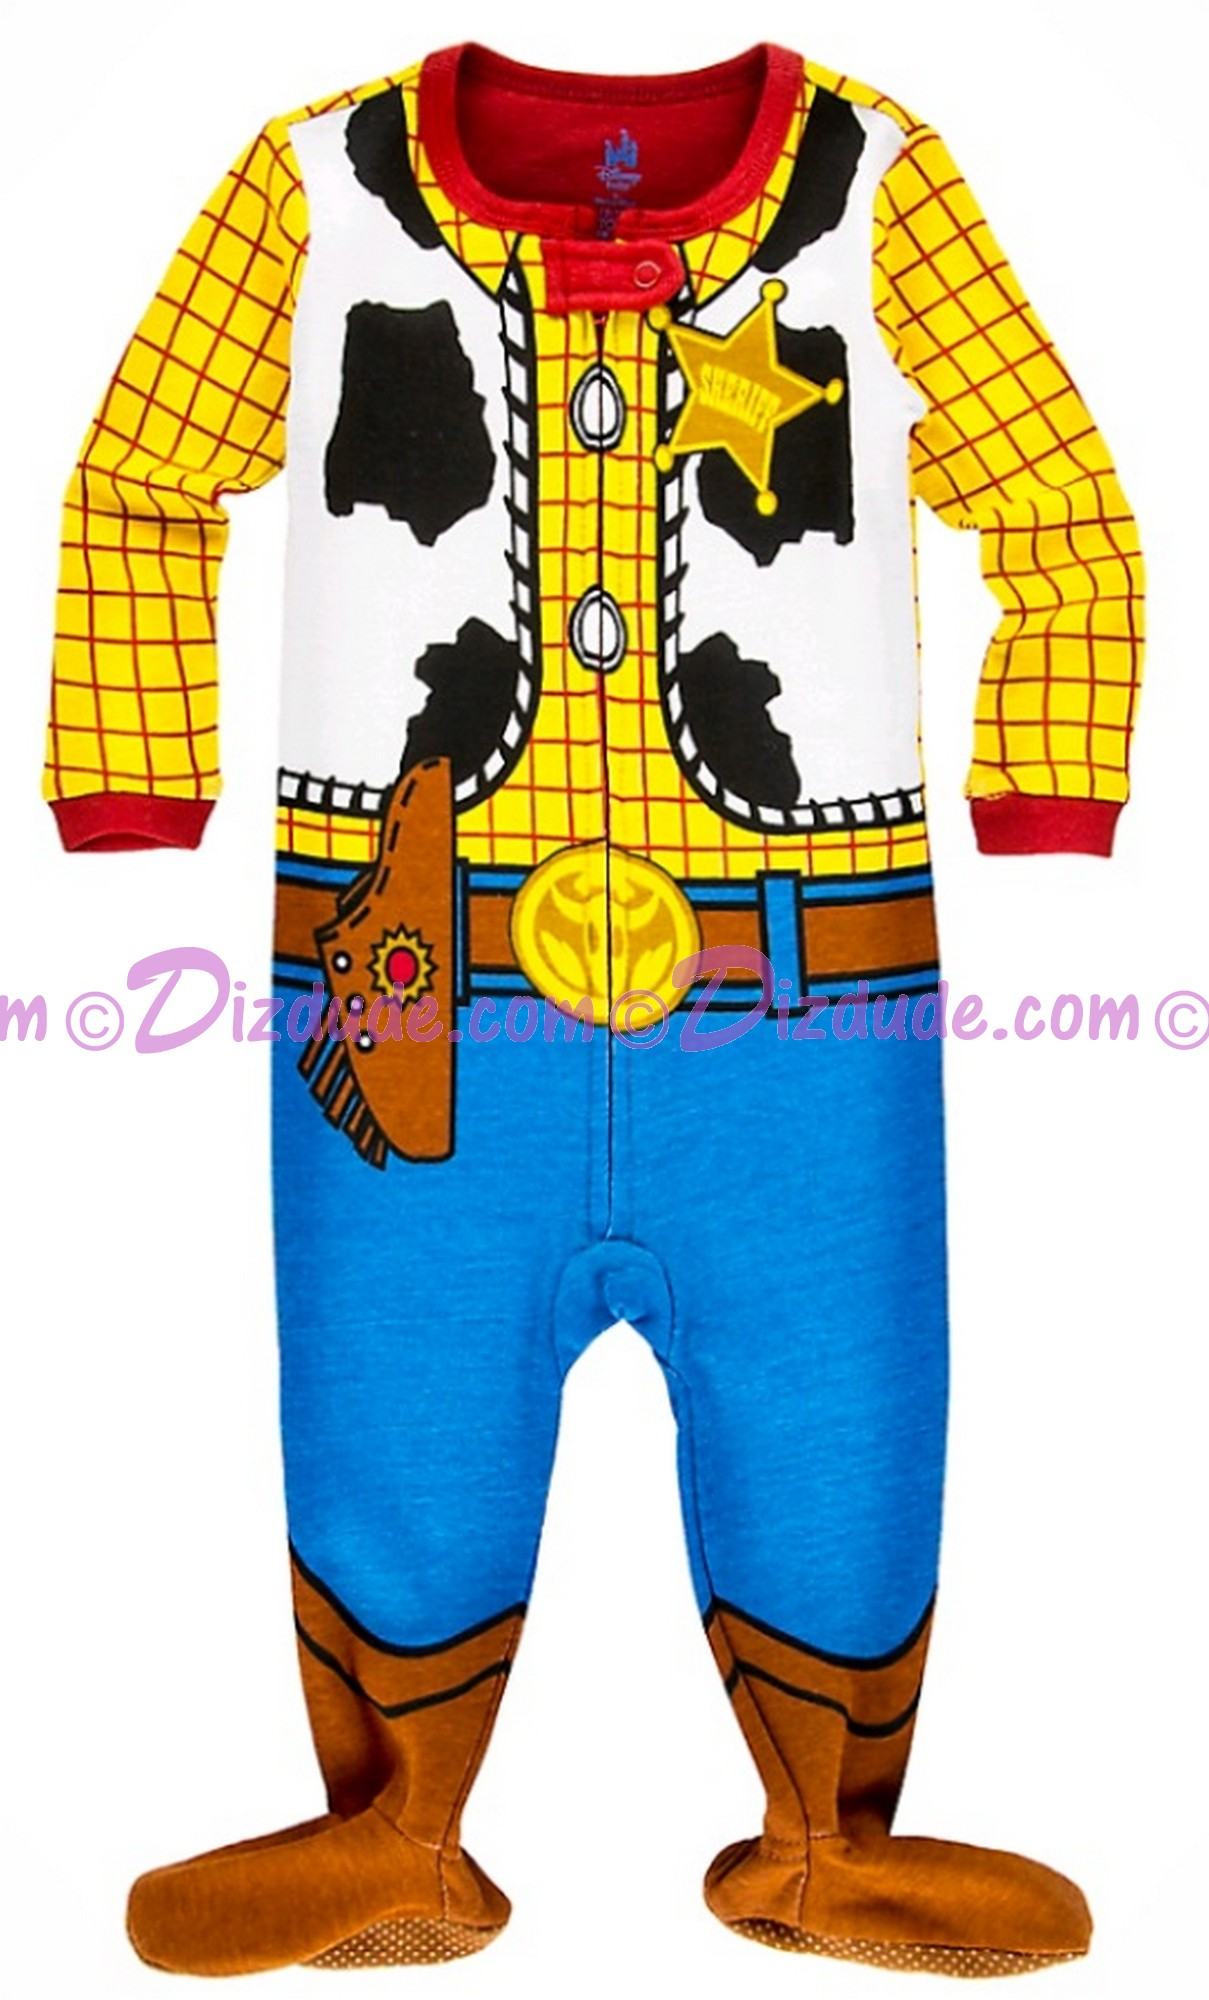 92bc3a3f6 DIZDUDE.com | Disney's Toy Story Land Woody Costume Baby Jumpsuit ...